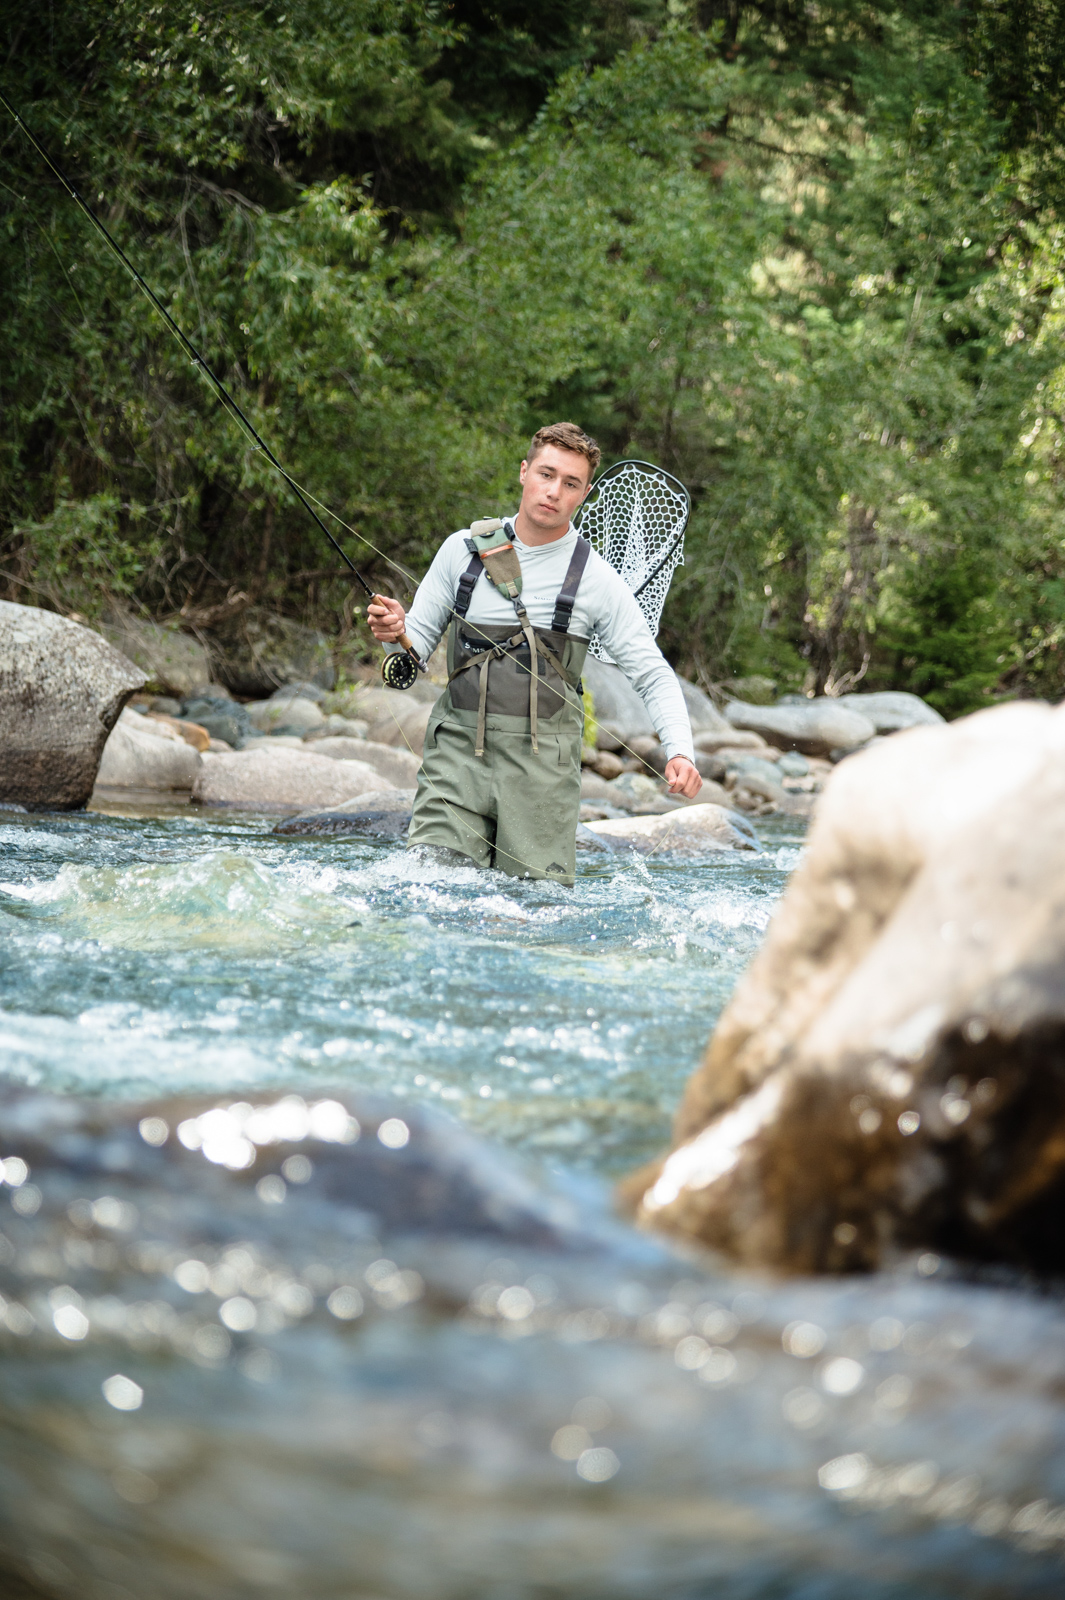 Brecken's Fly Fishing Senior Session